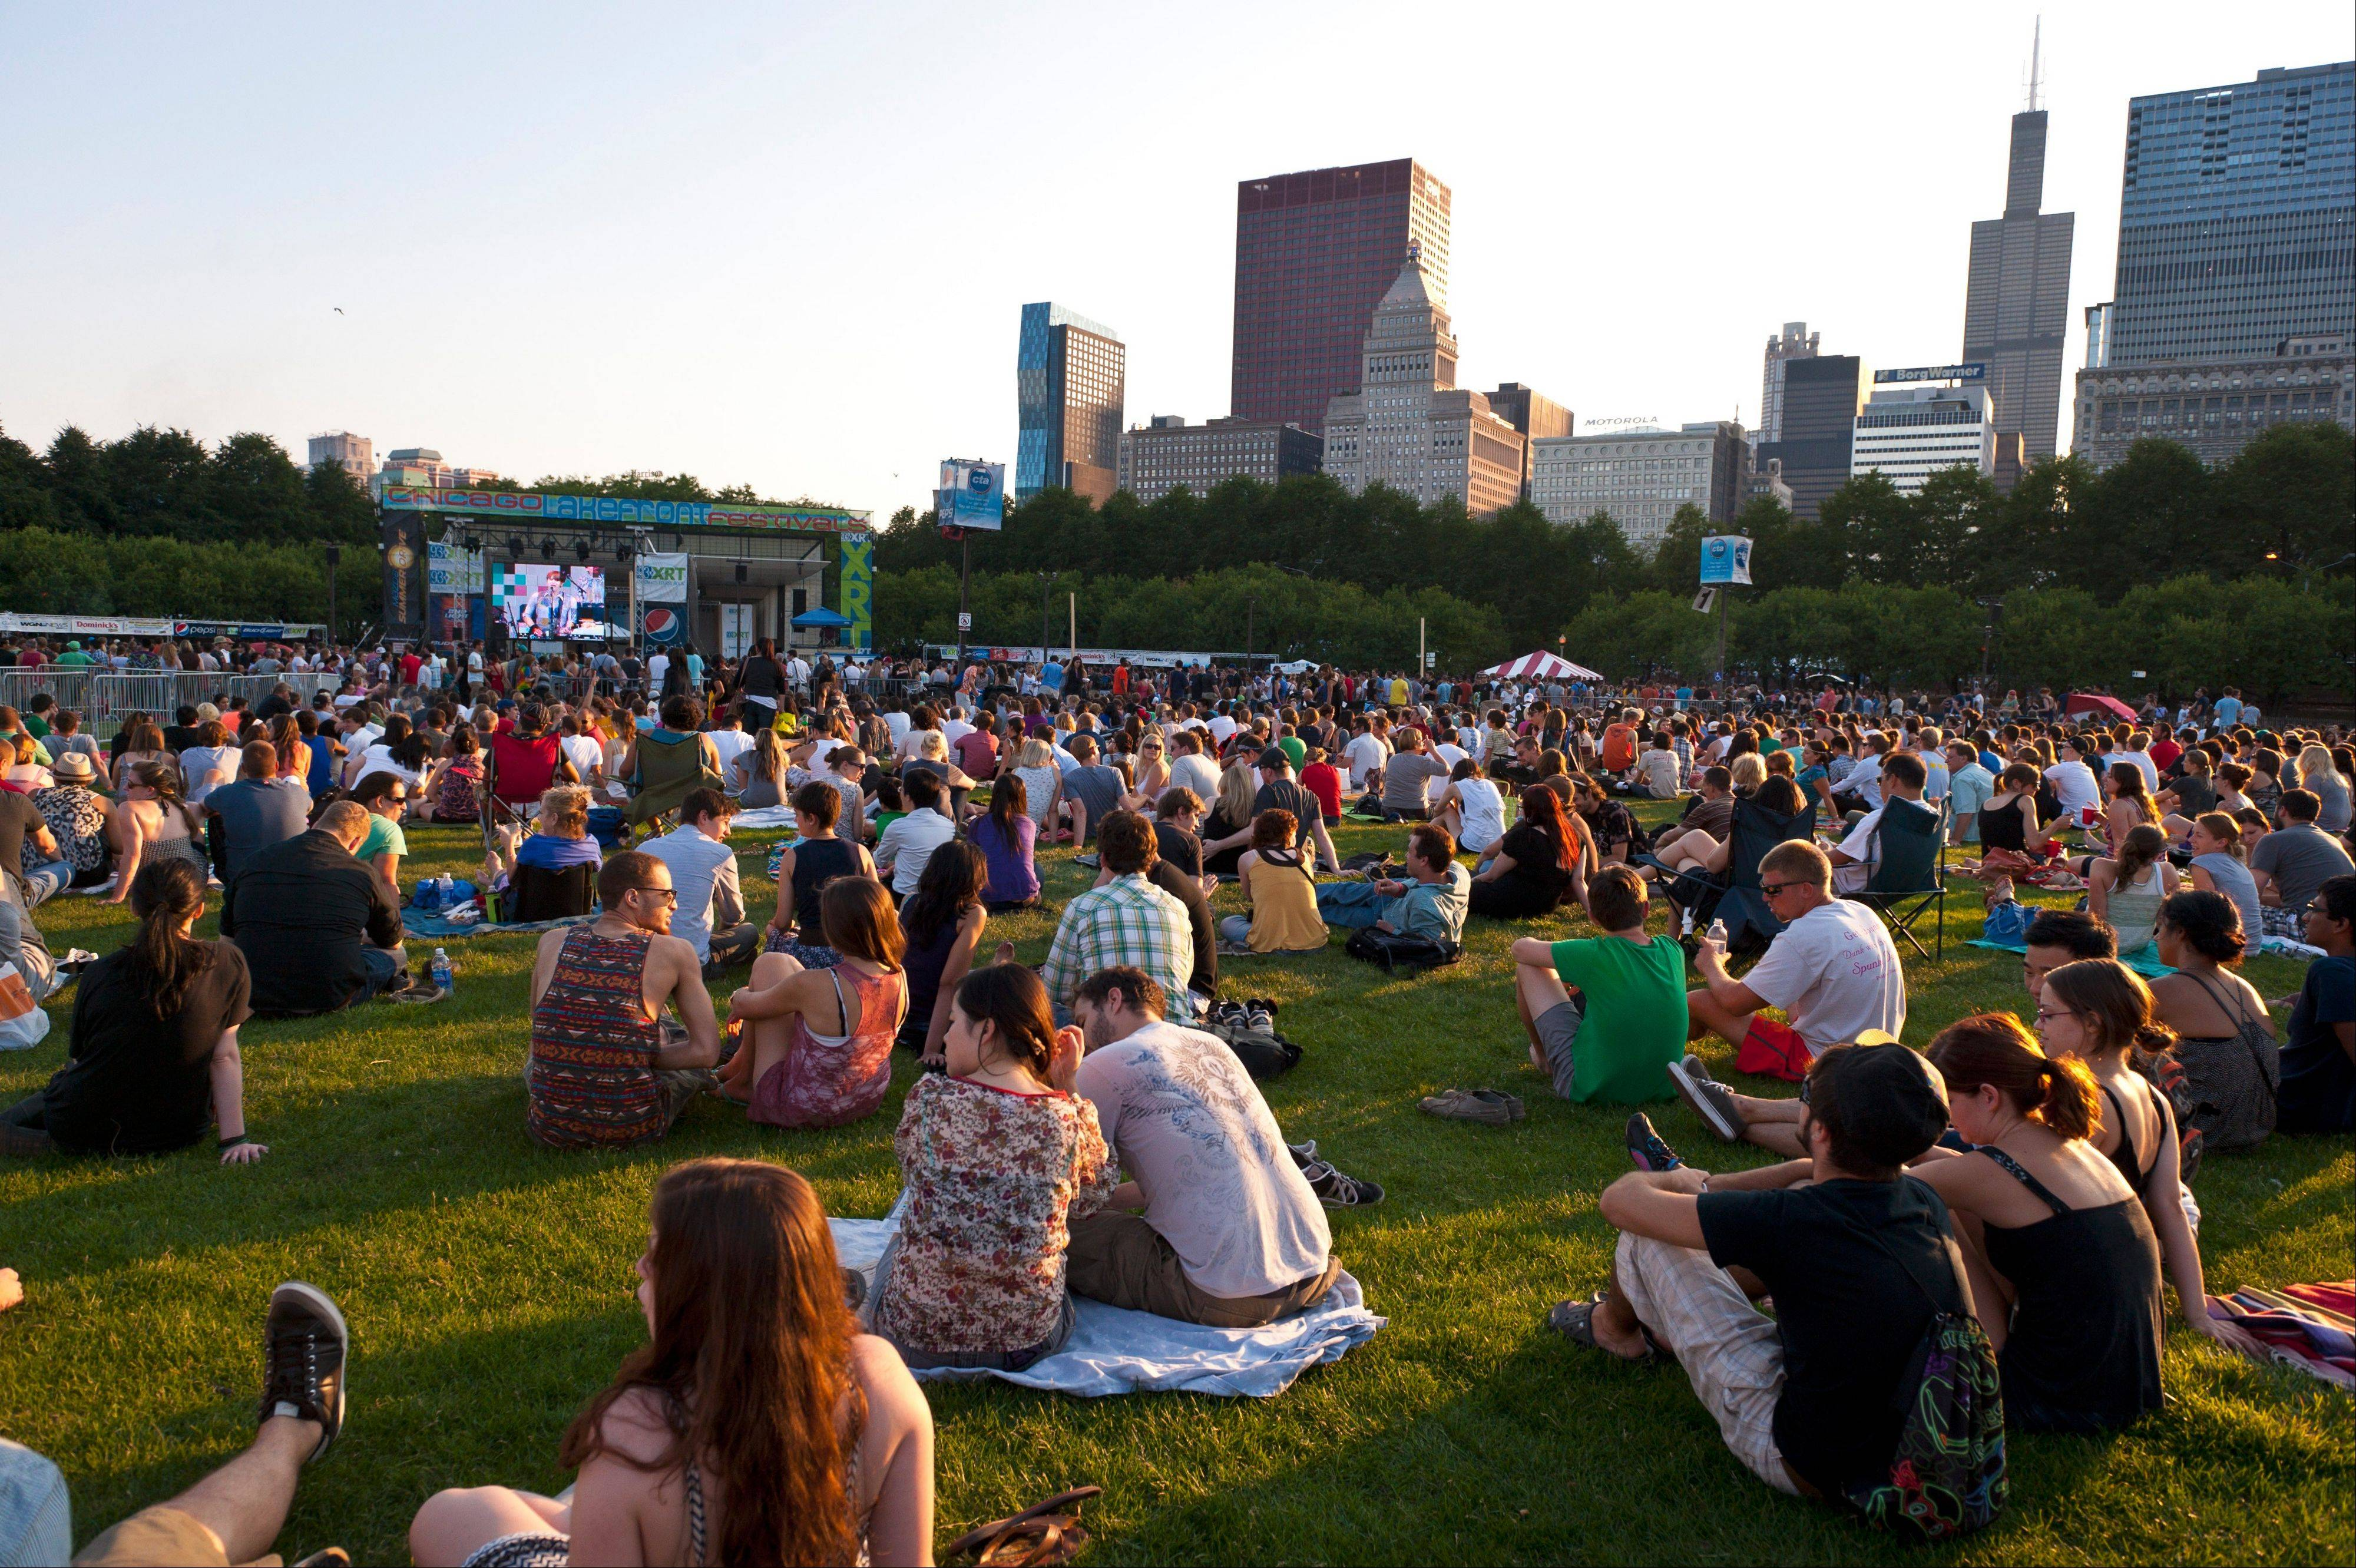 Free lawn seating provides a chance to enjoy concerts during the Taste of Chicago held in Grant Park.